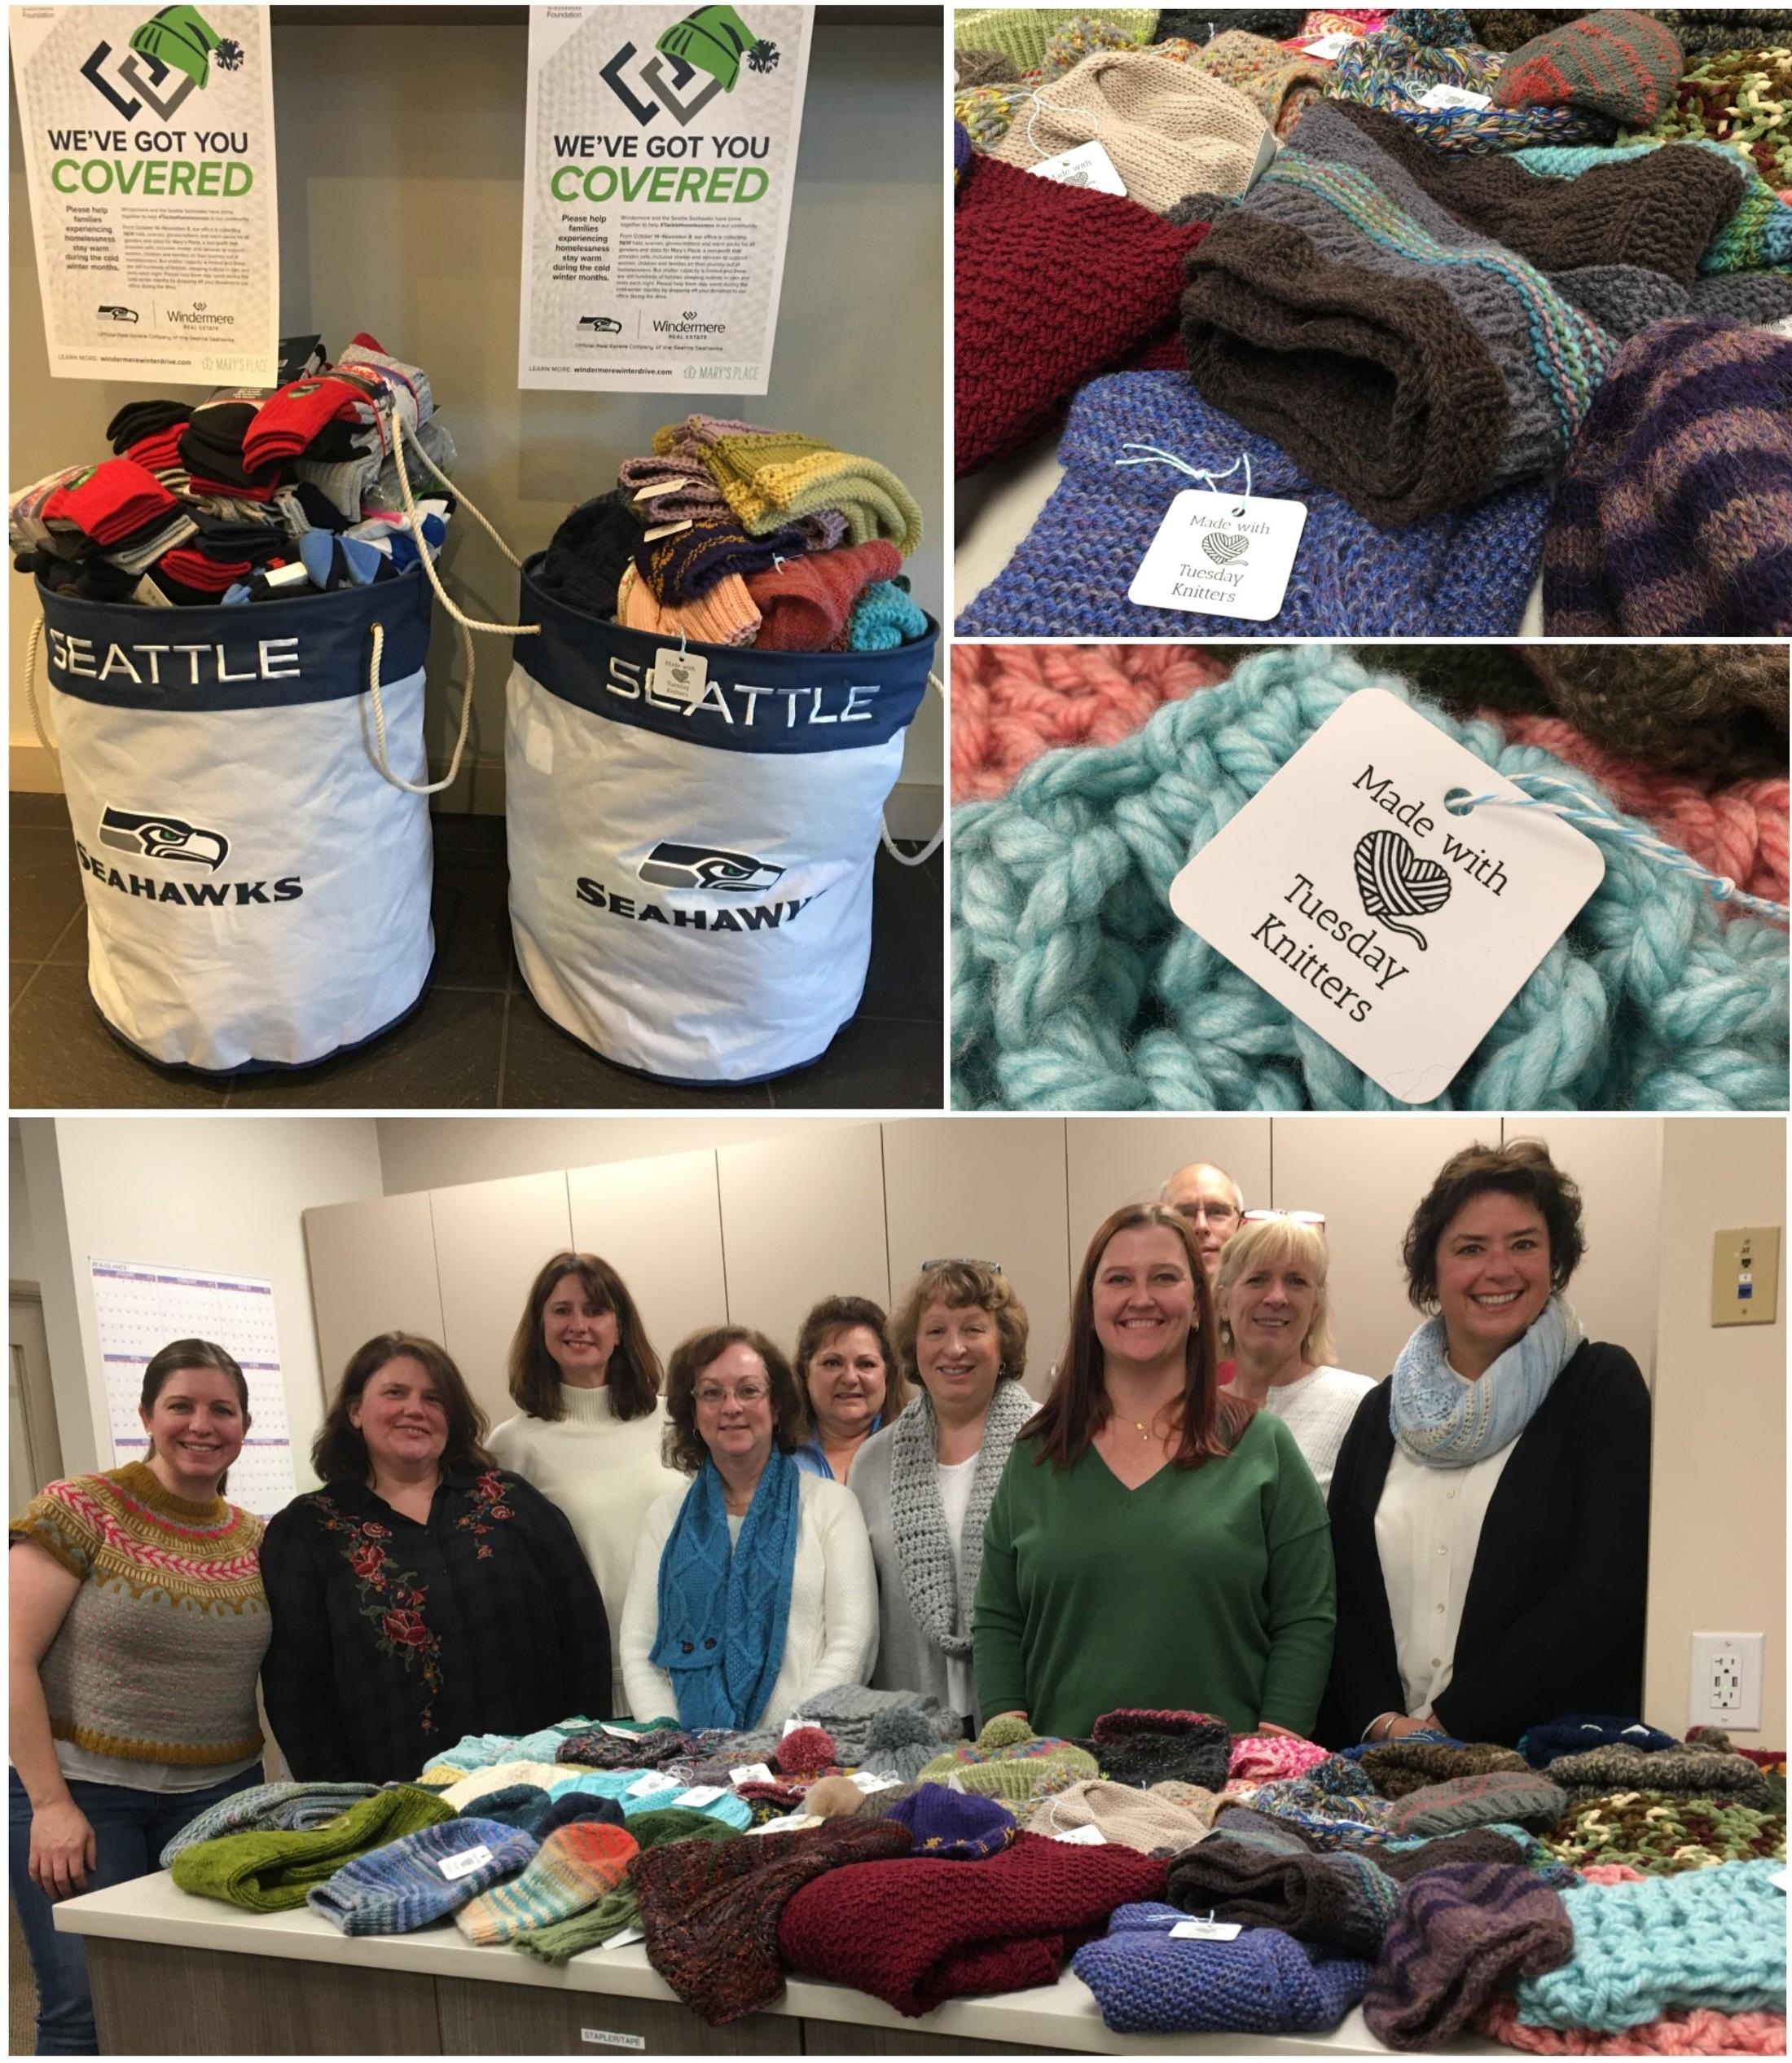 The Windermere Mercer Island office made the drive extra special by partnering again with the Mercer Island Tuesday Knitters. The group contributed 67 cozy hand-knitted hats and scarves this year.